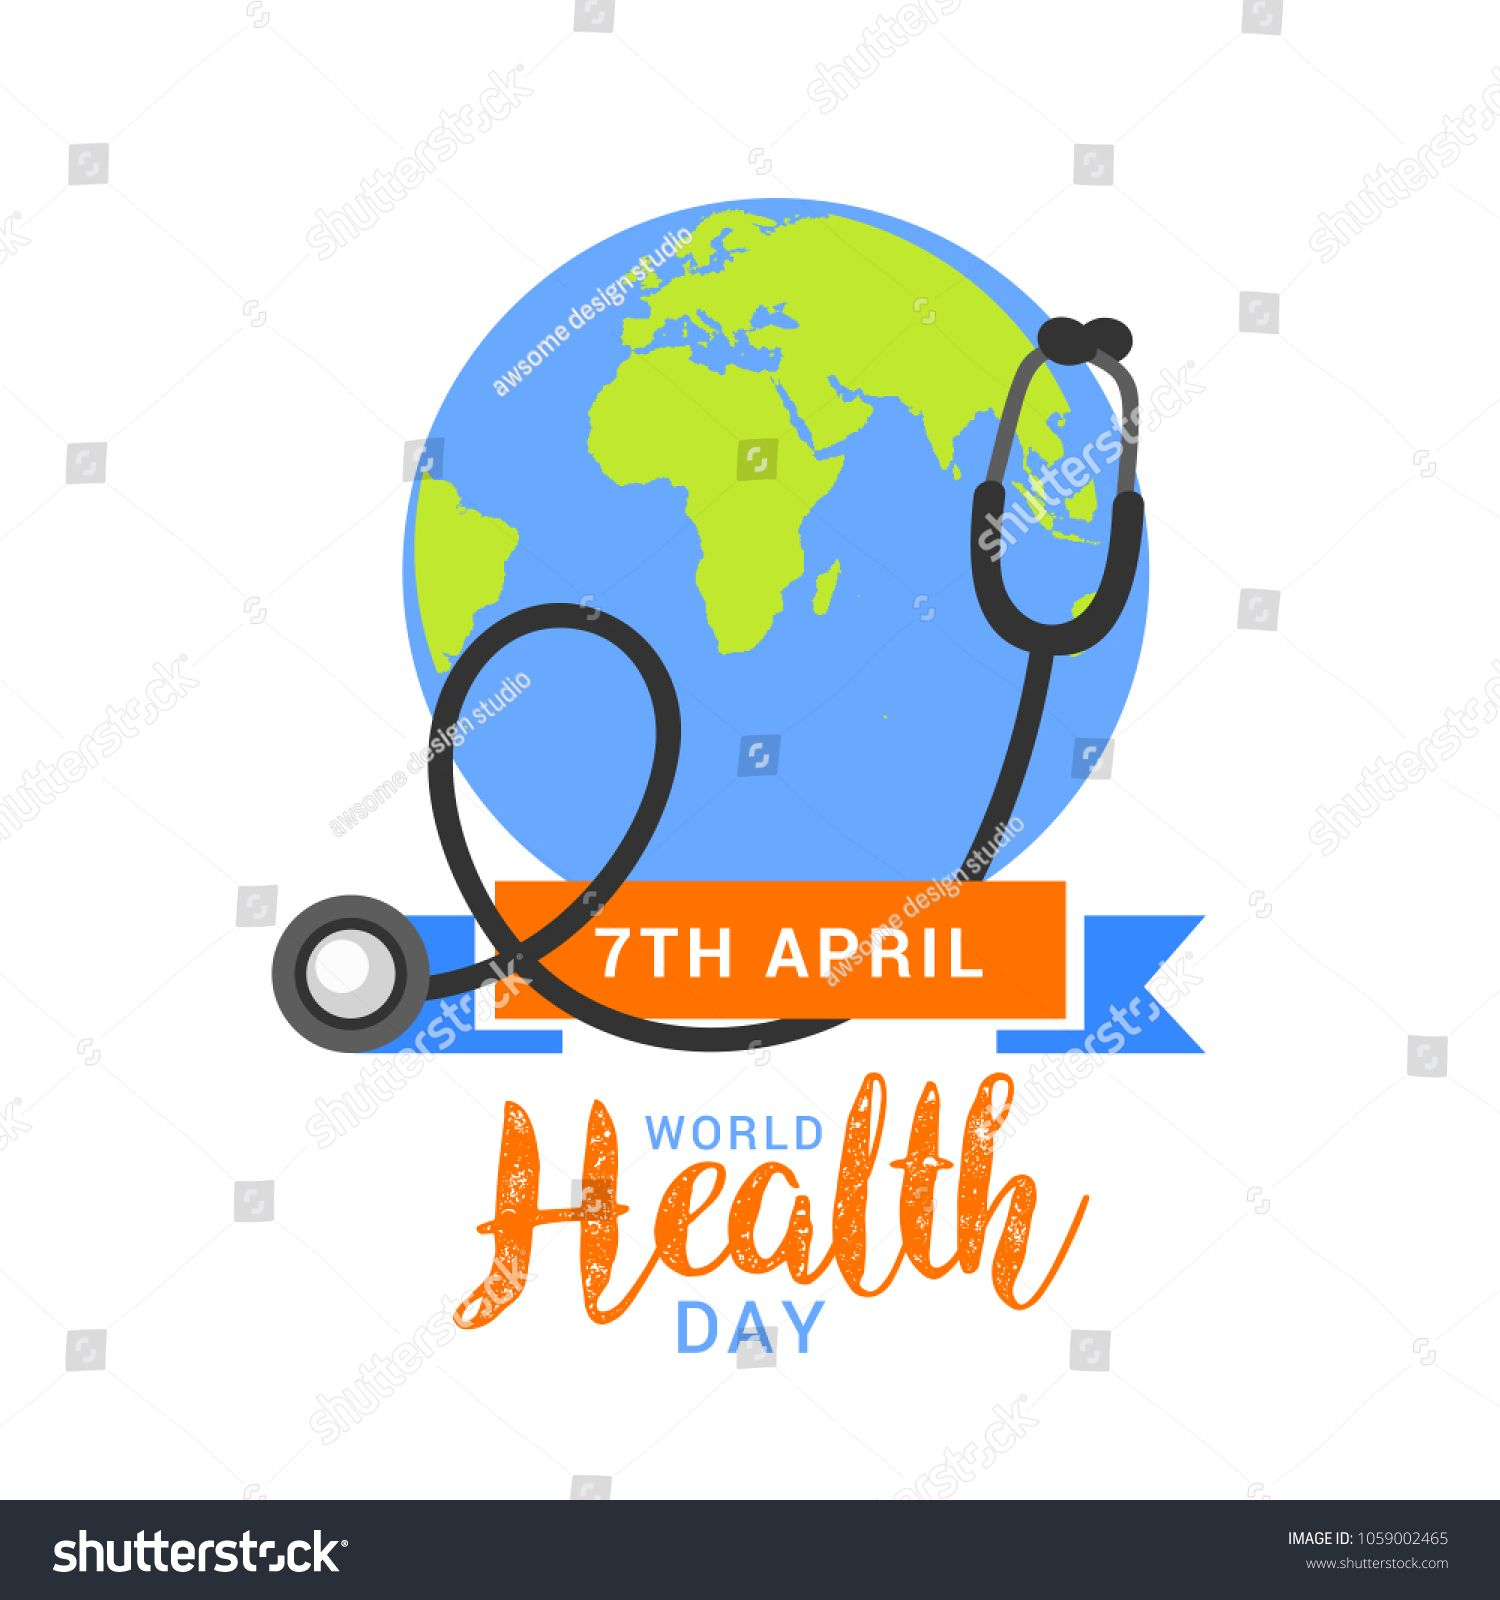 Illustration of World health day concept text design with